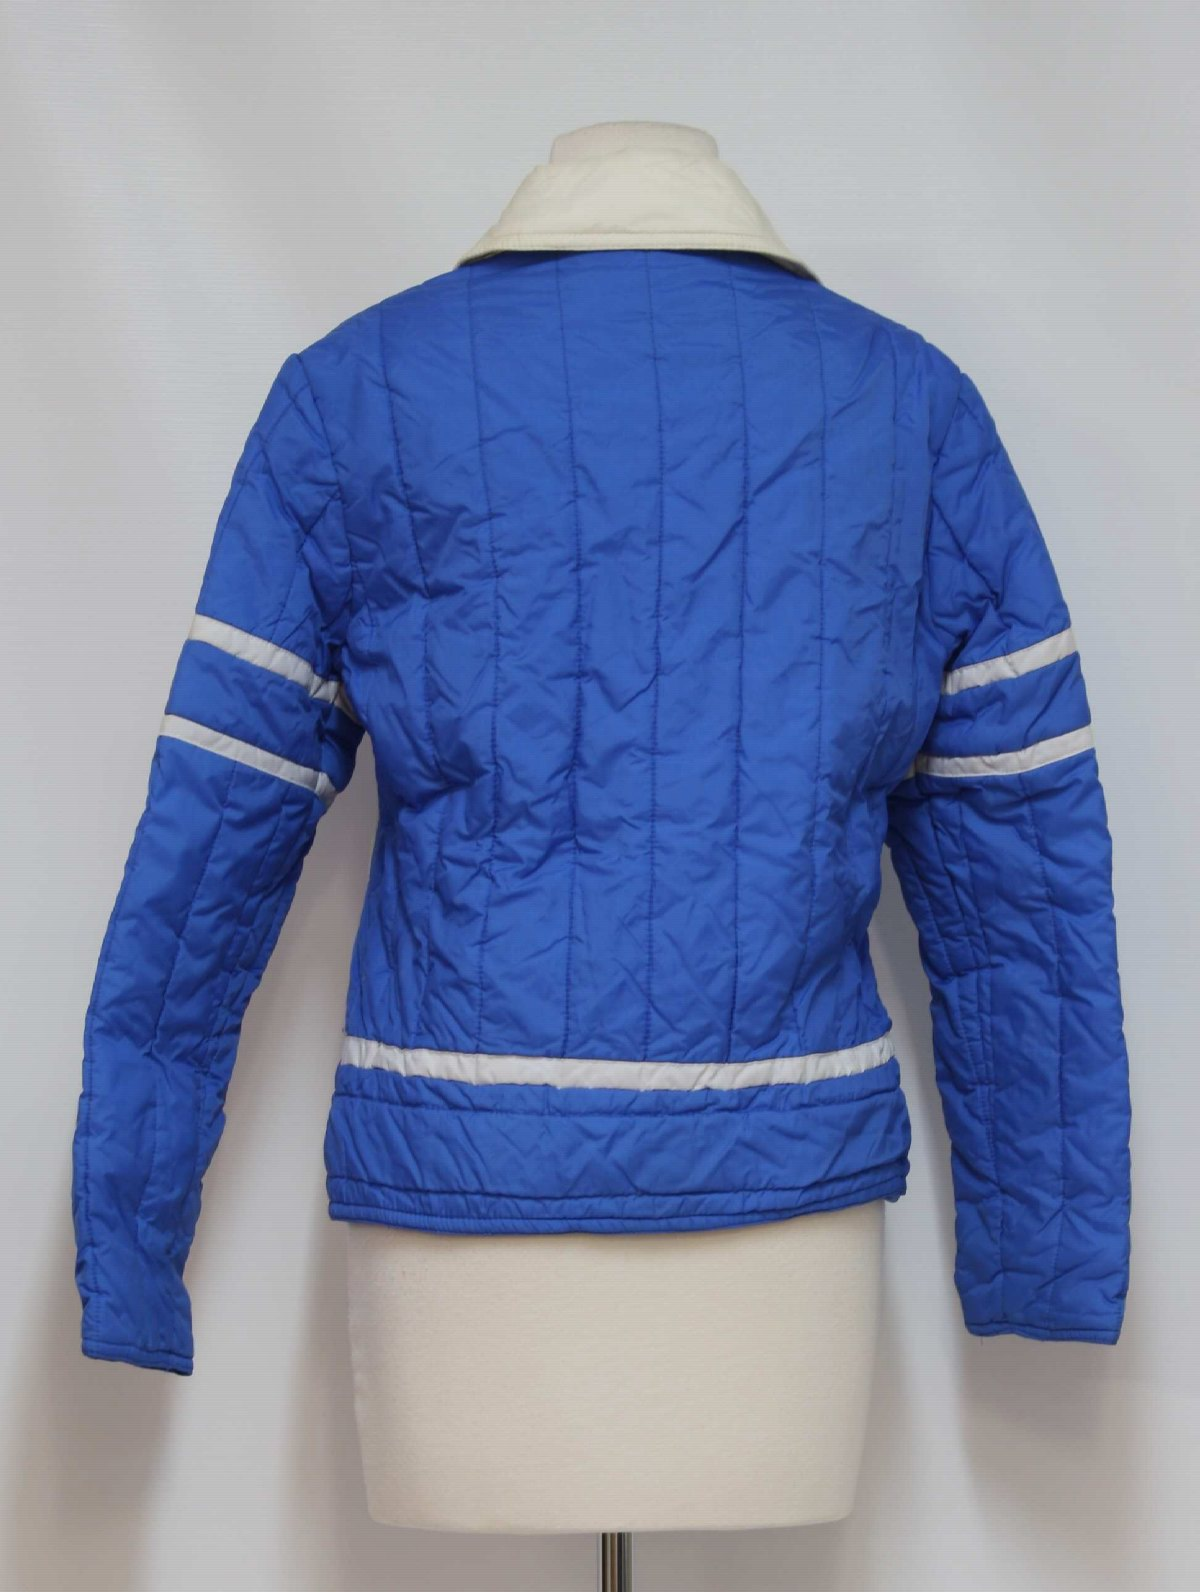 ef32d9db0e Seventies Vintage Jacket  70s -Jean Claude Killy- Womens royal blue and  white nylon ski jacket. Polyester filled